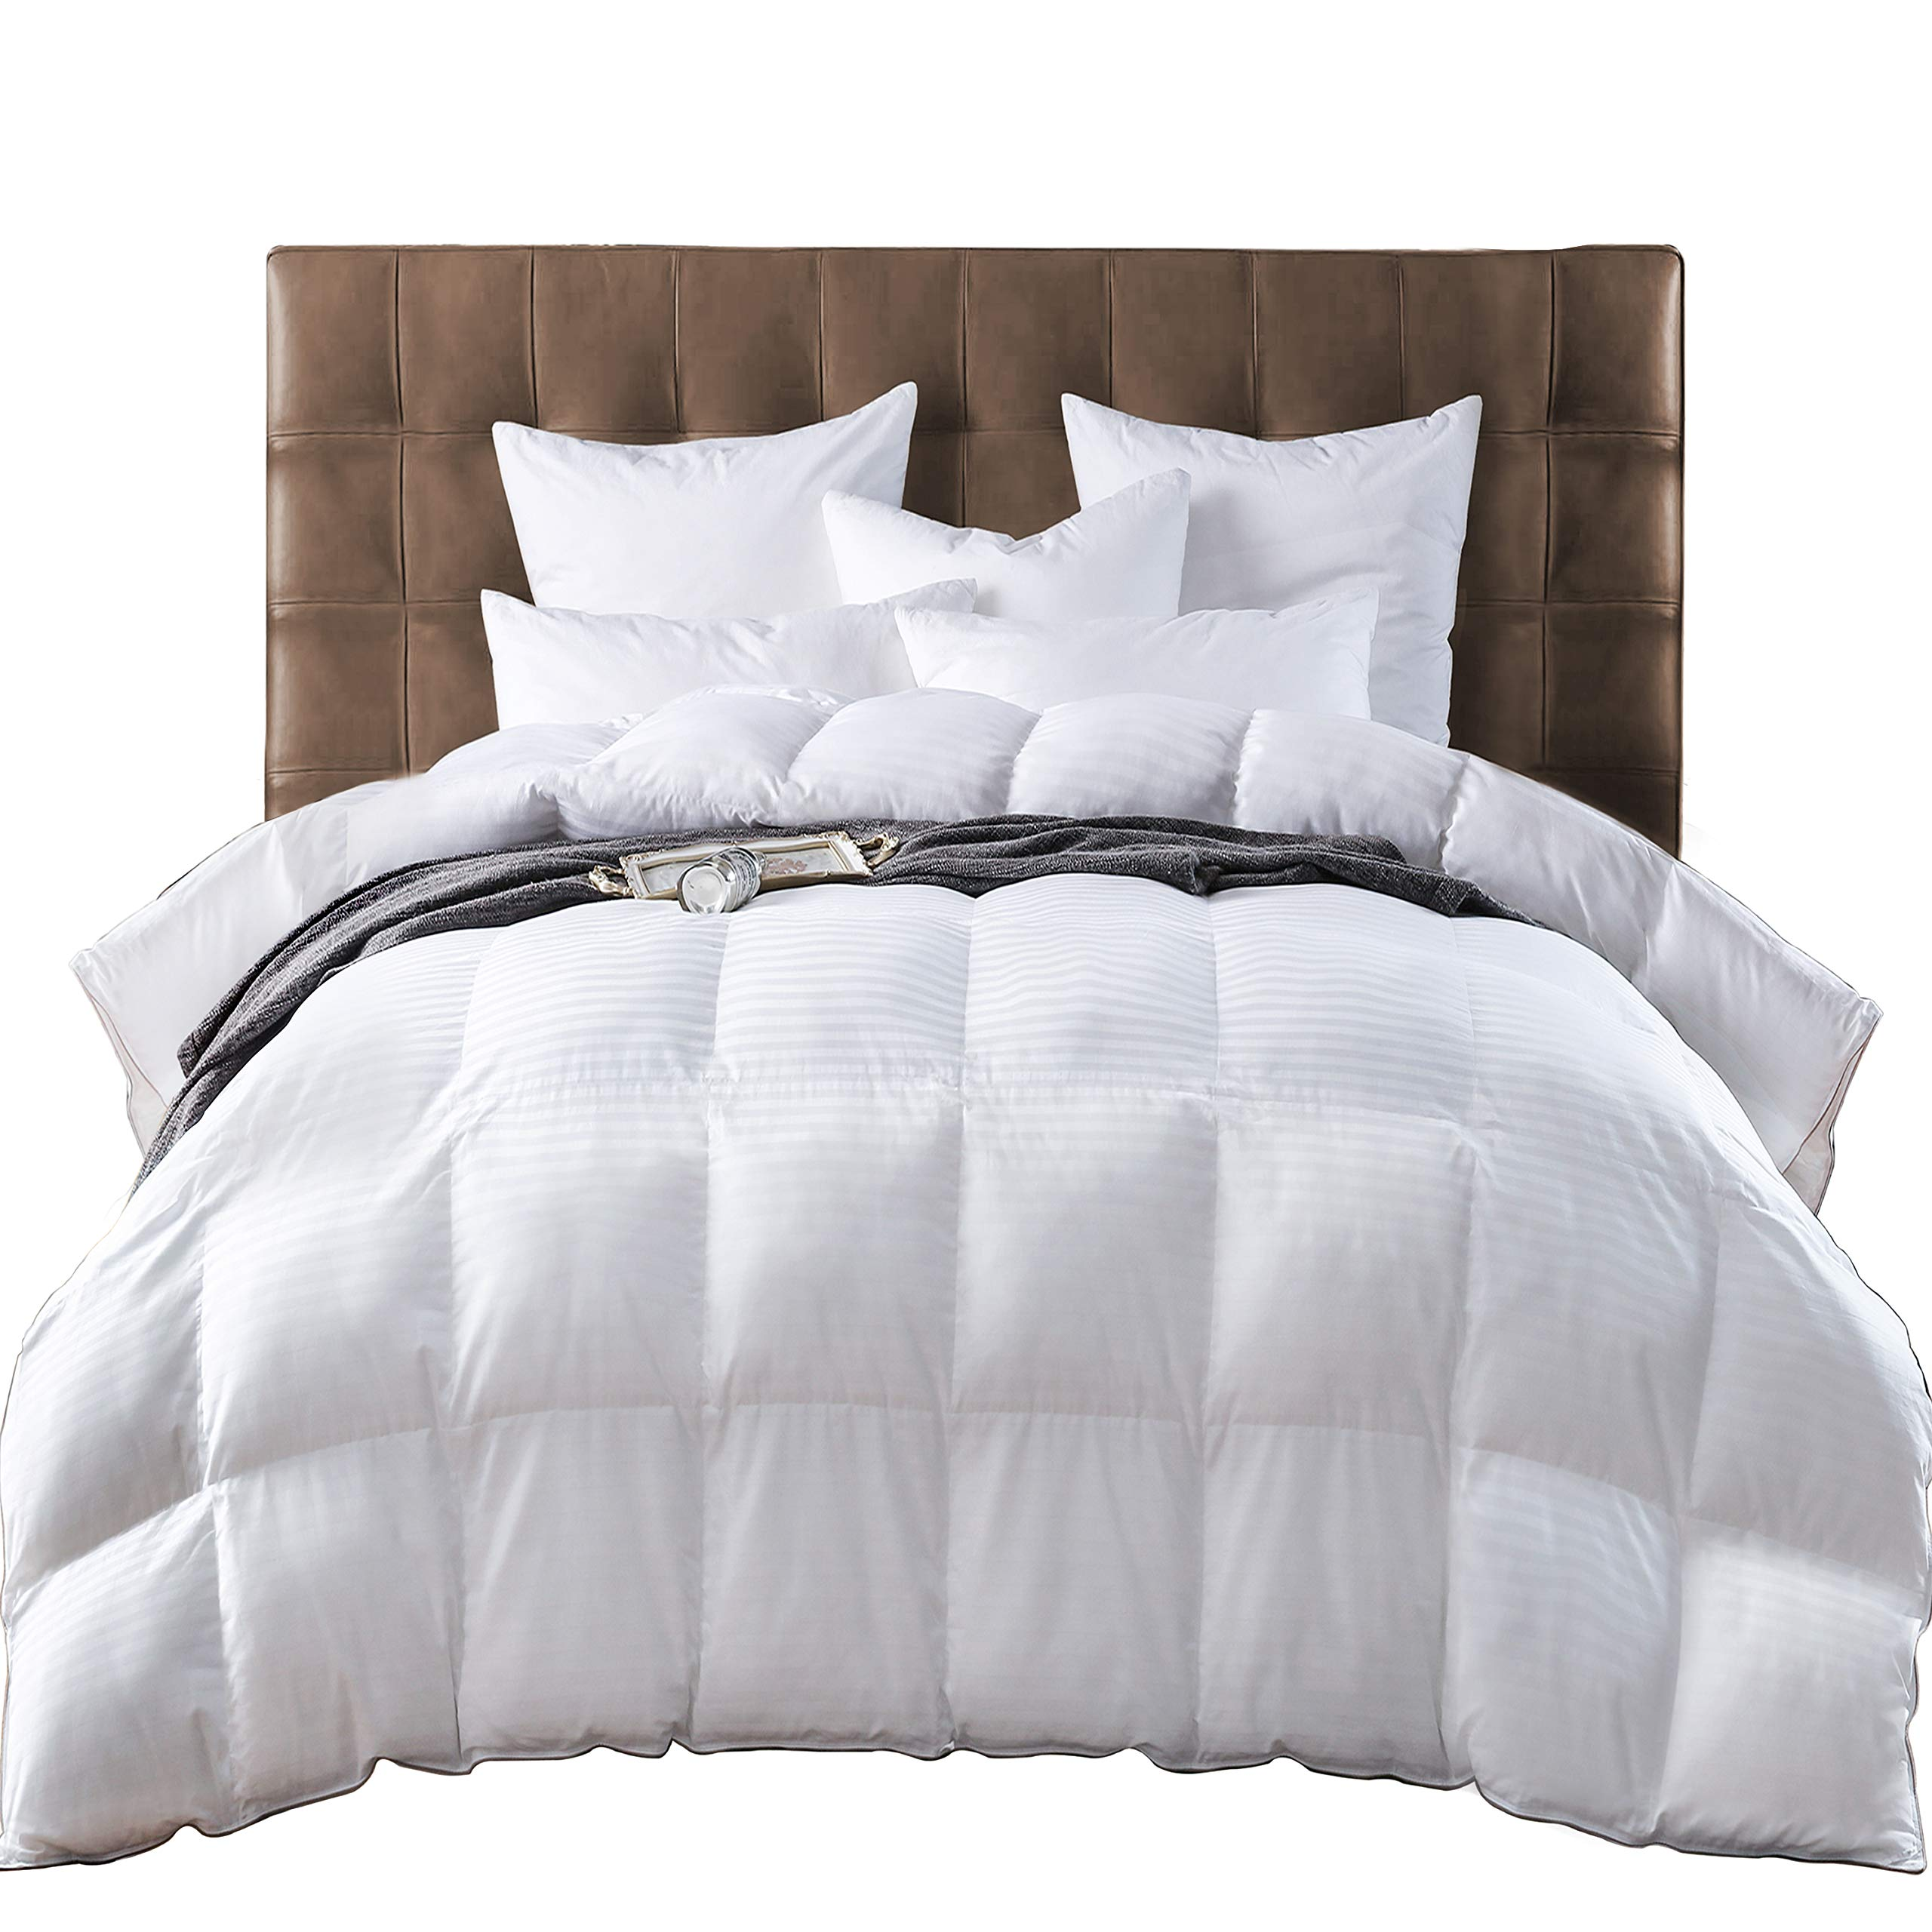 Queen Size Goose Down Feather Comforter Queen Duvet Insert All Seasons Stripes White Hypo-allergenic 600 Thread Count 100% Cotton Shell Down Proof with 8 Corner Tabs (Queen) by Three Geese (Image #1)